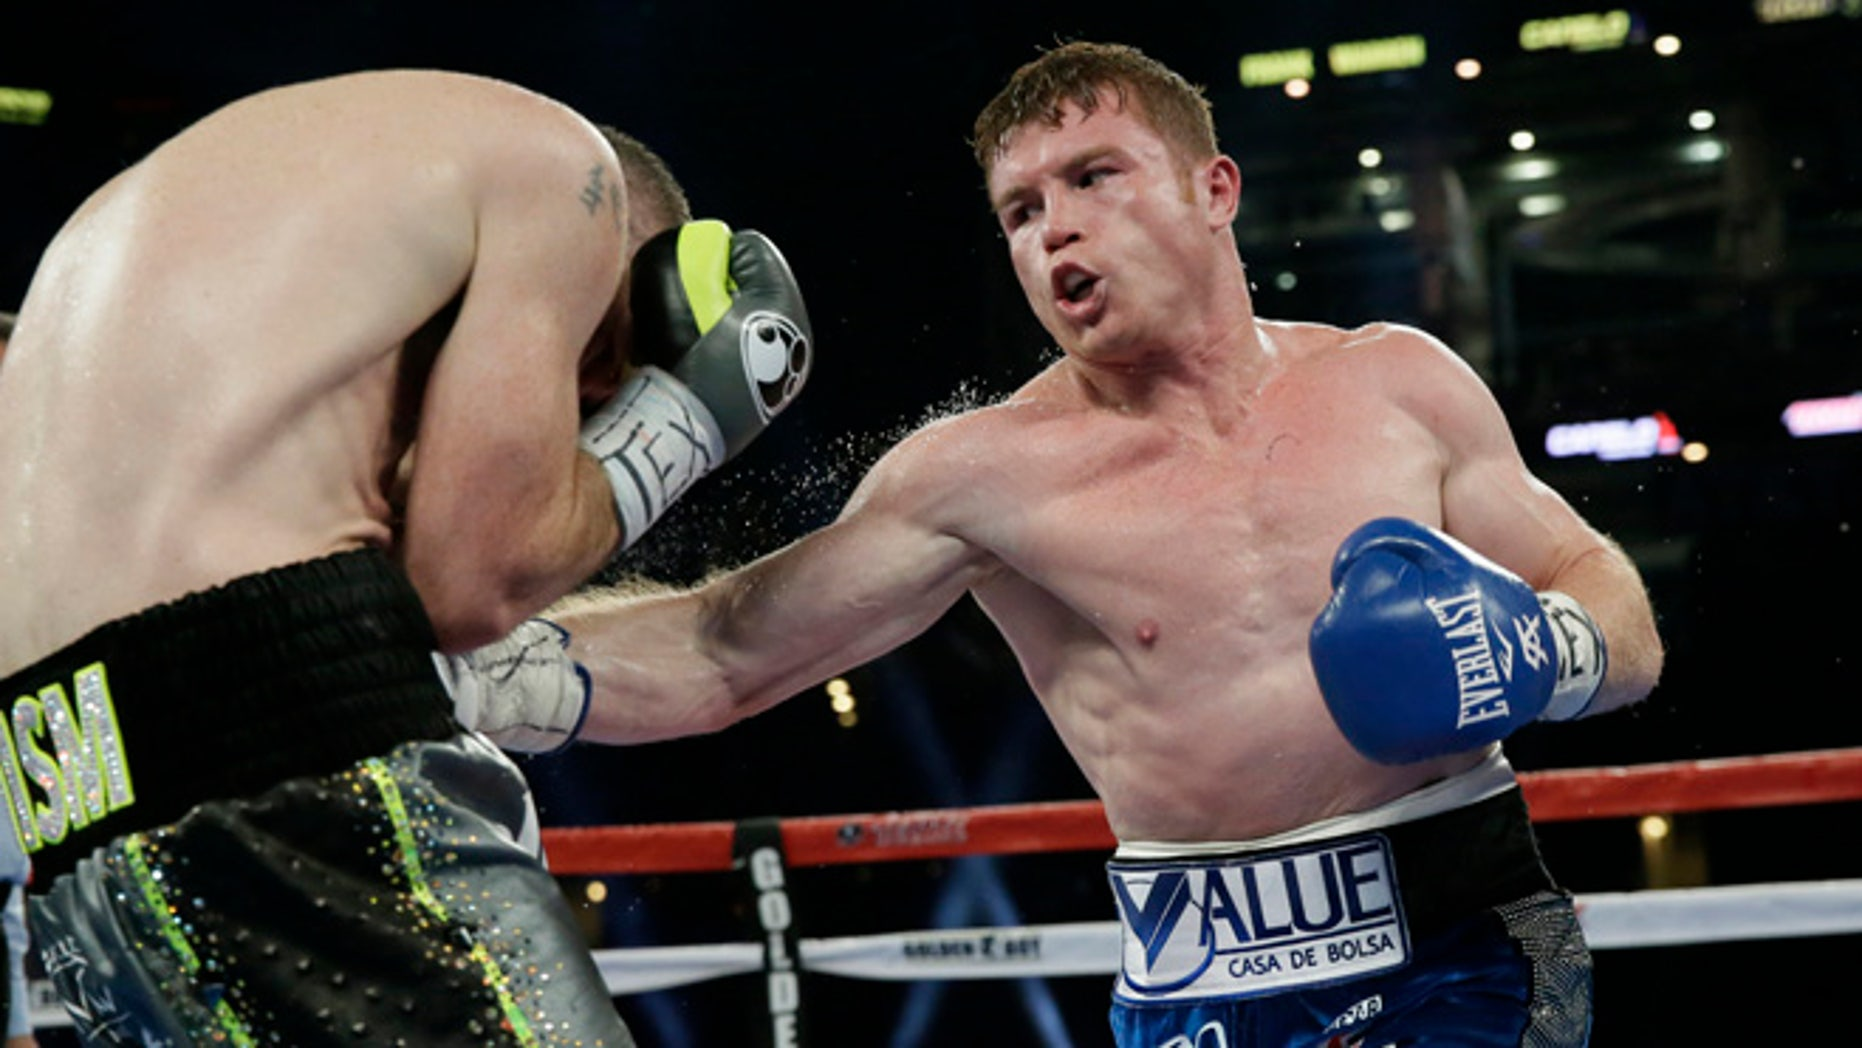 Canelo Alvarez, right, punches Liam Smith, left, during the fifth round of the WBO Junior Middleweight championship boxing match at the stadium in Arlington, Texas, Saturday, Sept. 17, 2016. Alvarez won by a knock out in the ninth round. (AP Photo/LM Otero)